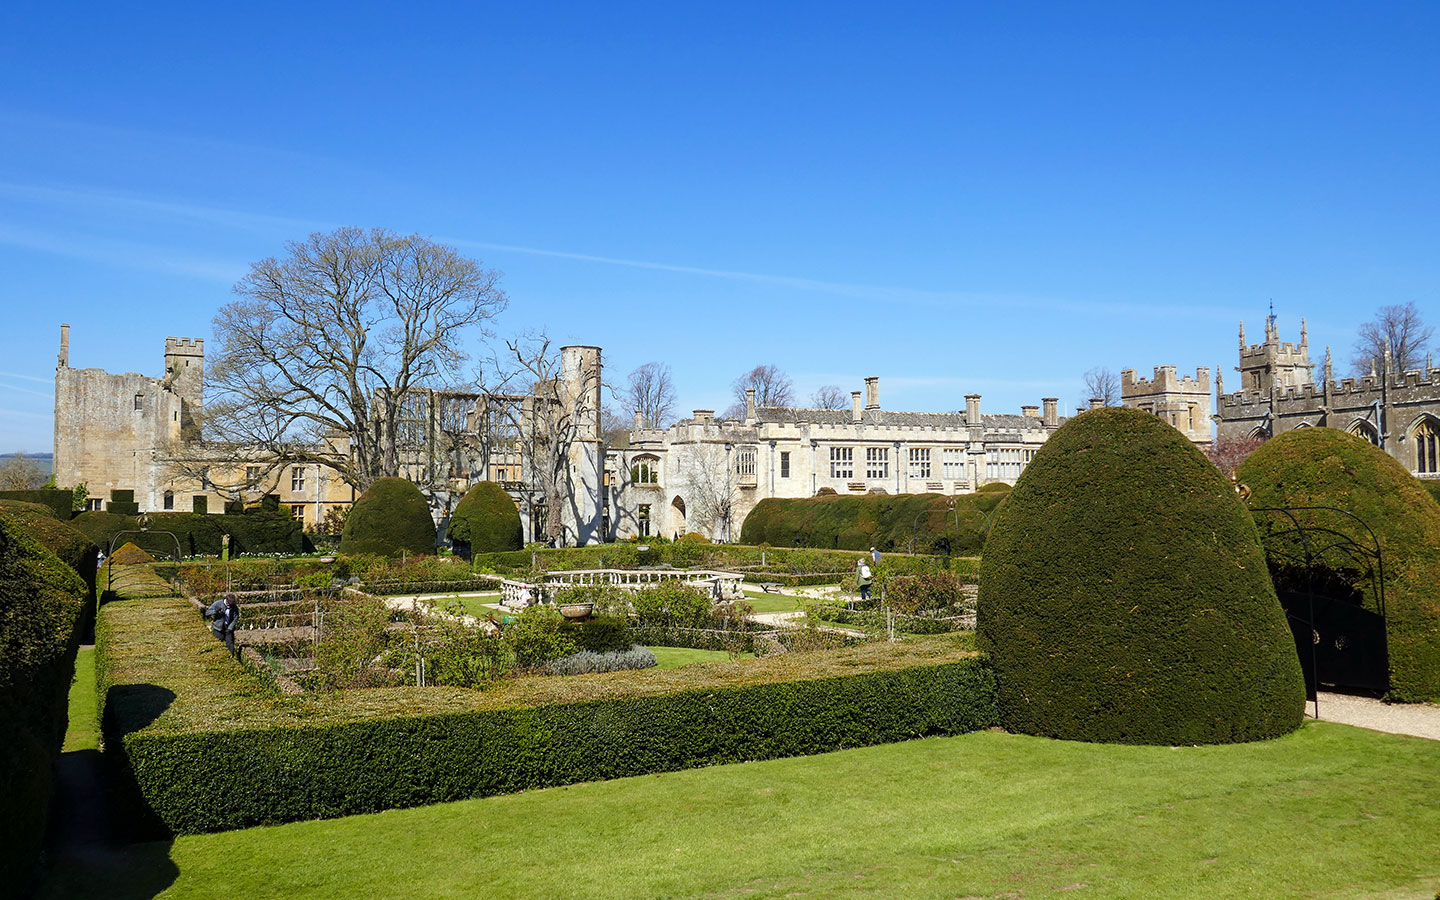 The grounds of Sudeley Castle